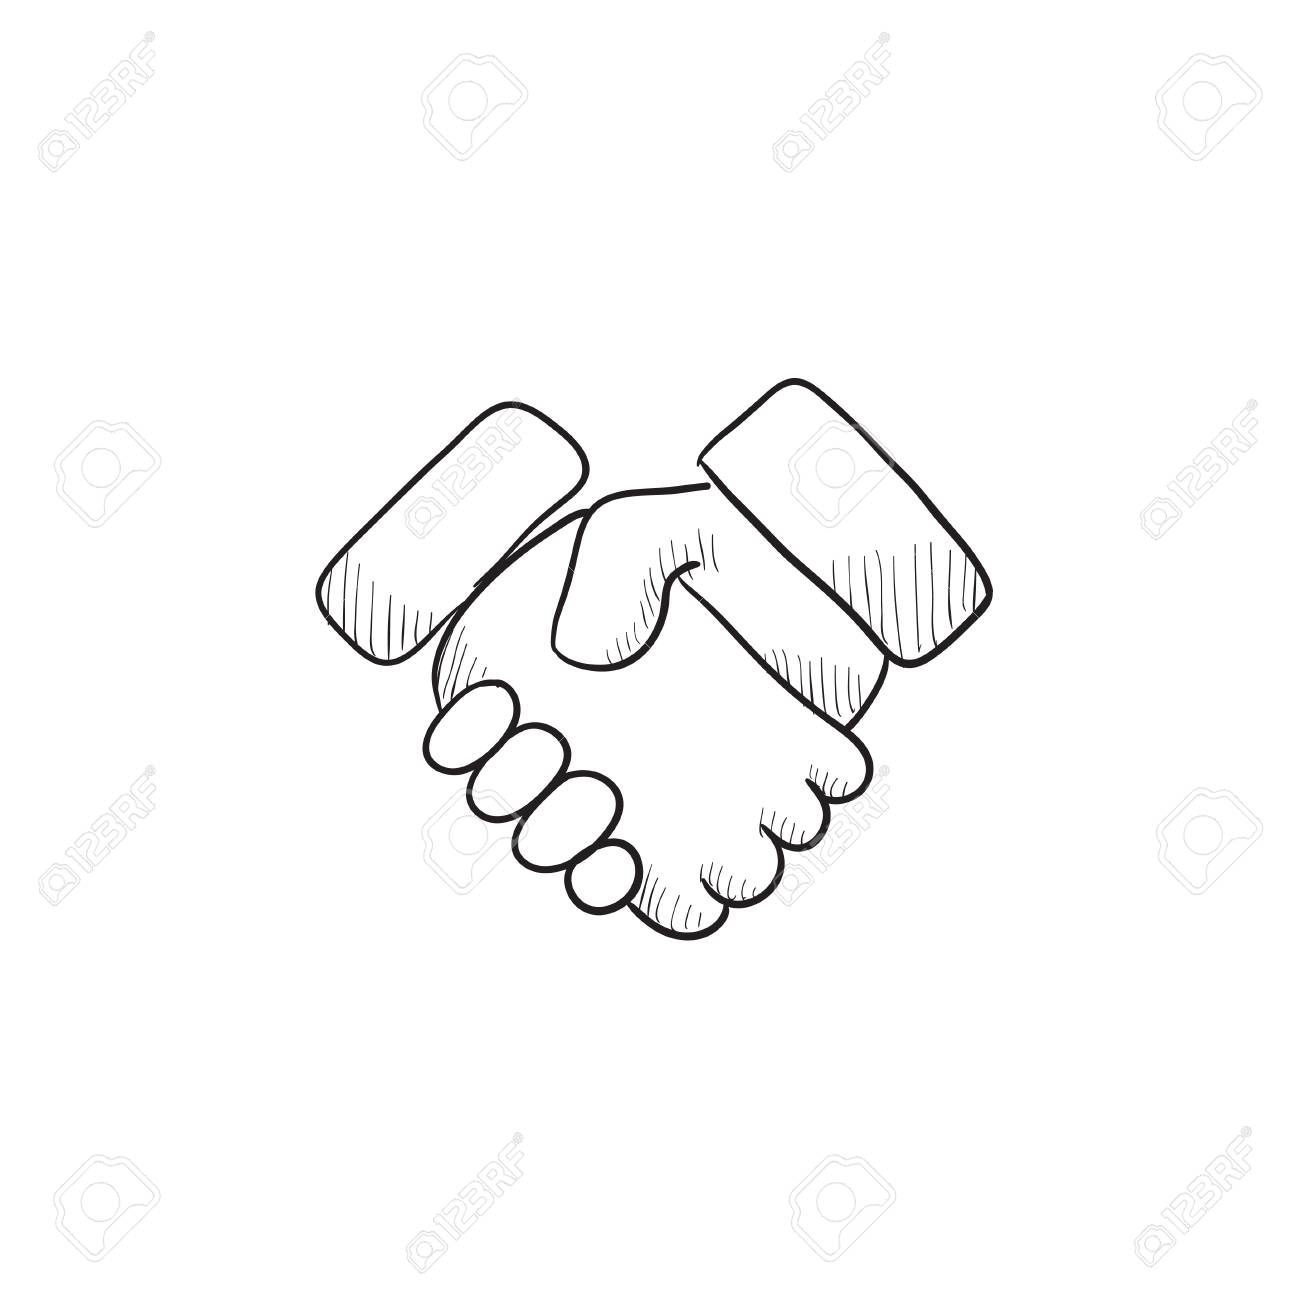 1300x1300 Handshake Vector Sketch Icon Isolated On Background. Hand Drawn